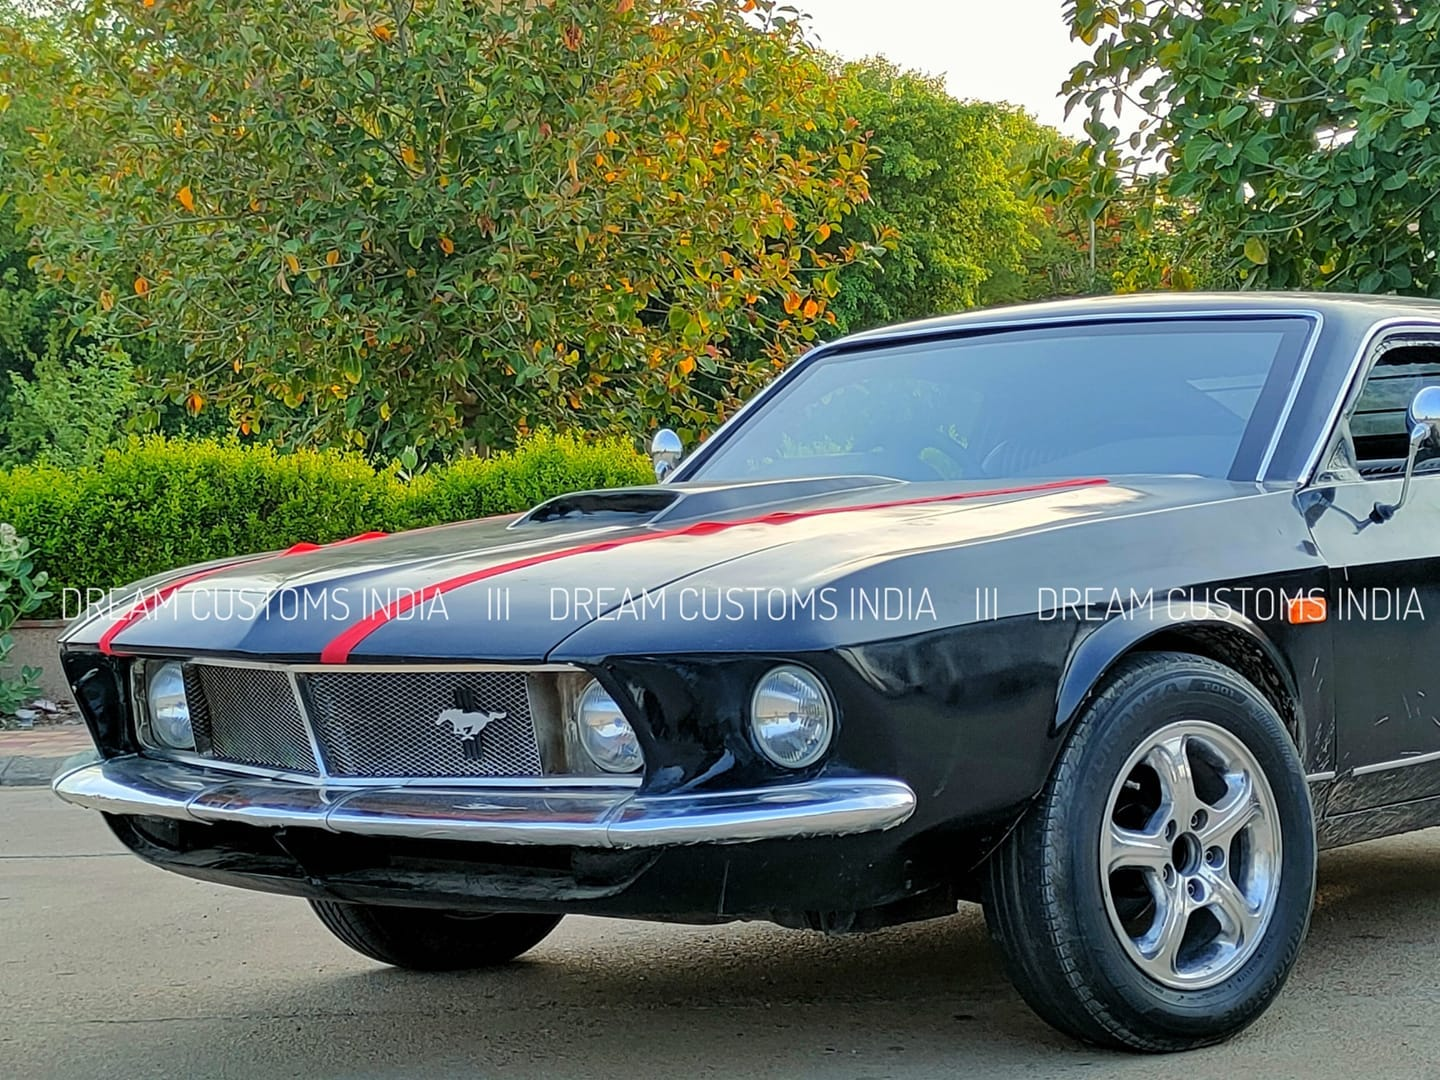 Ford-Mustang-replica-Hyundai-Accent-3